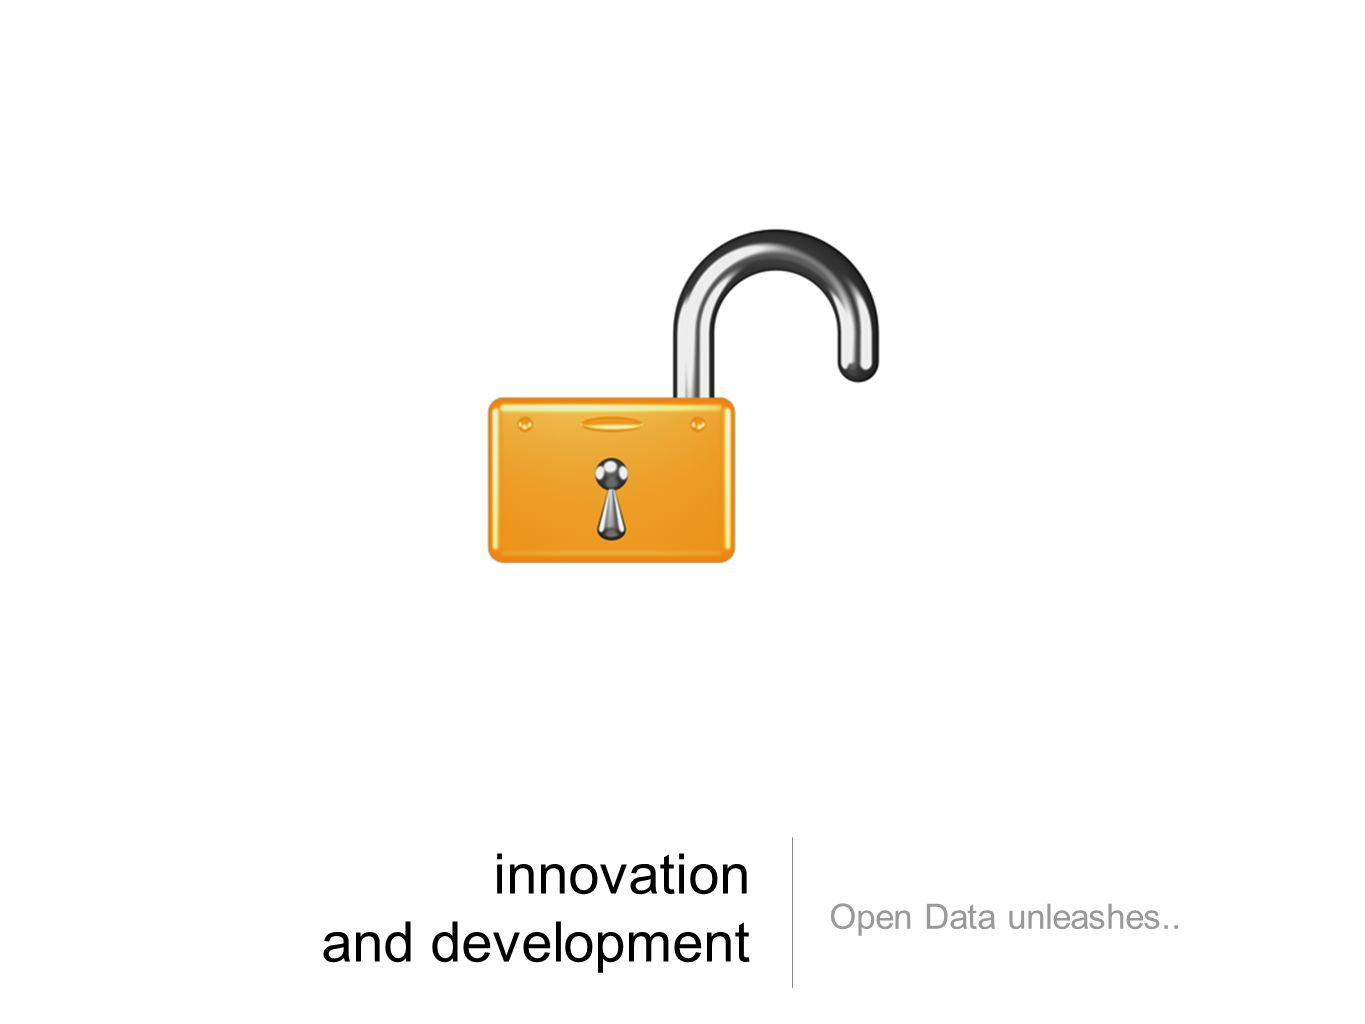 innovation and development Open Data unleashes..